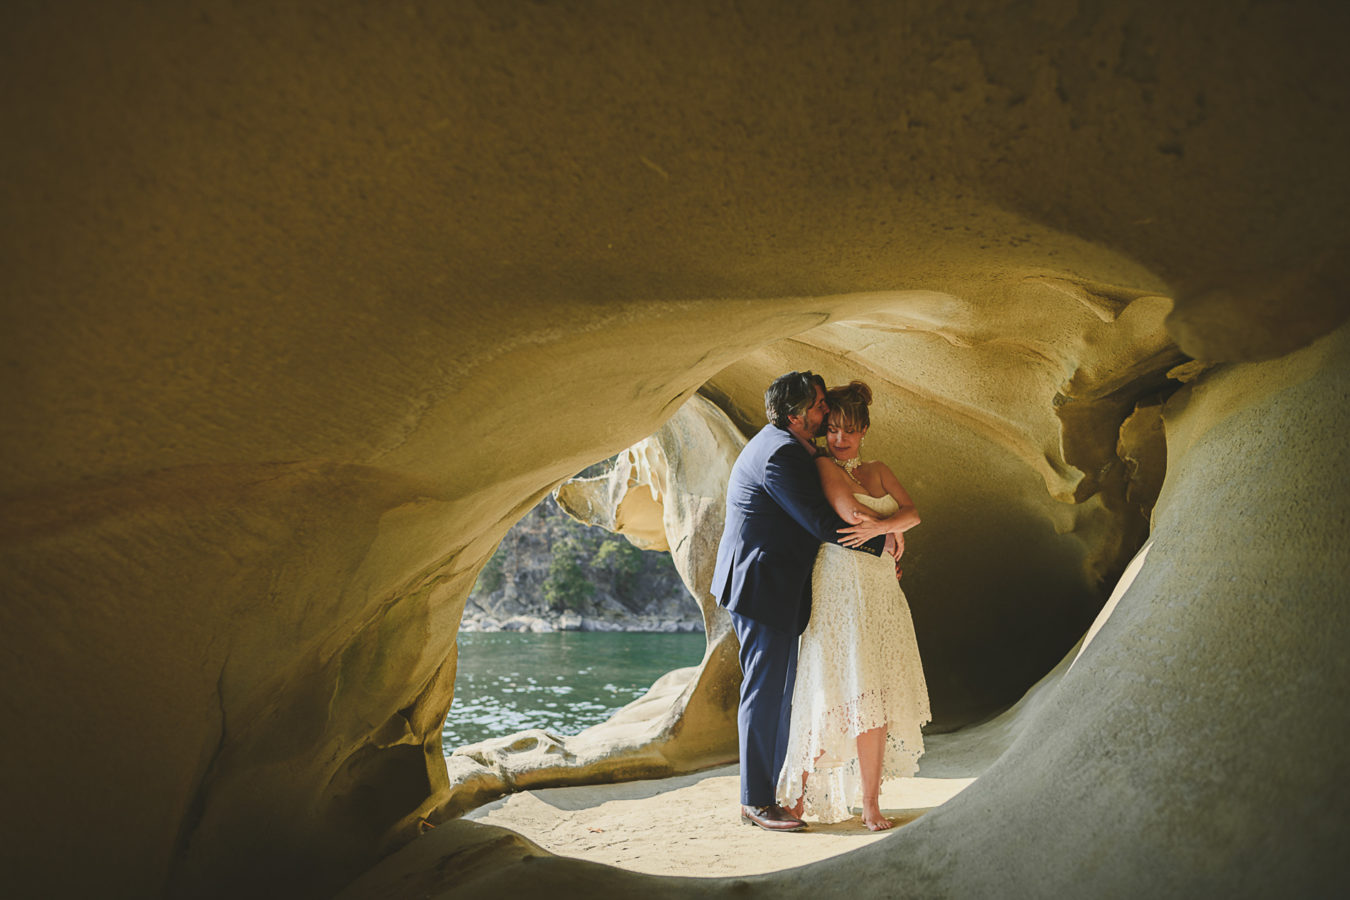 older bride and groom snuggled in a sandstone cave by the ocean's edge